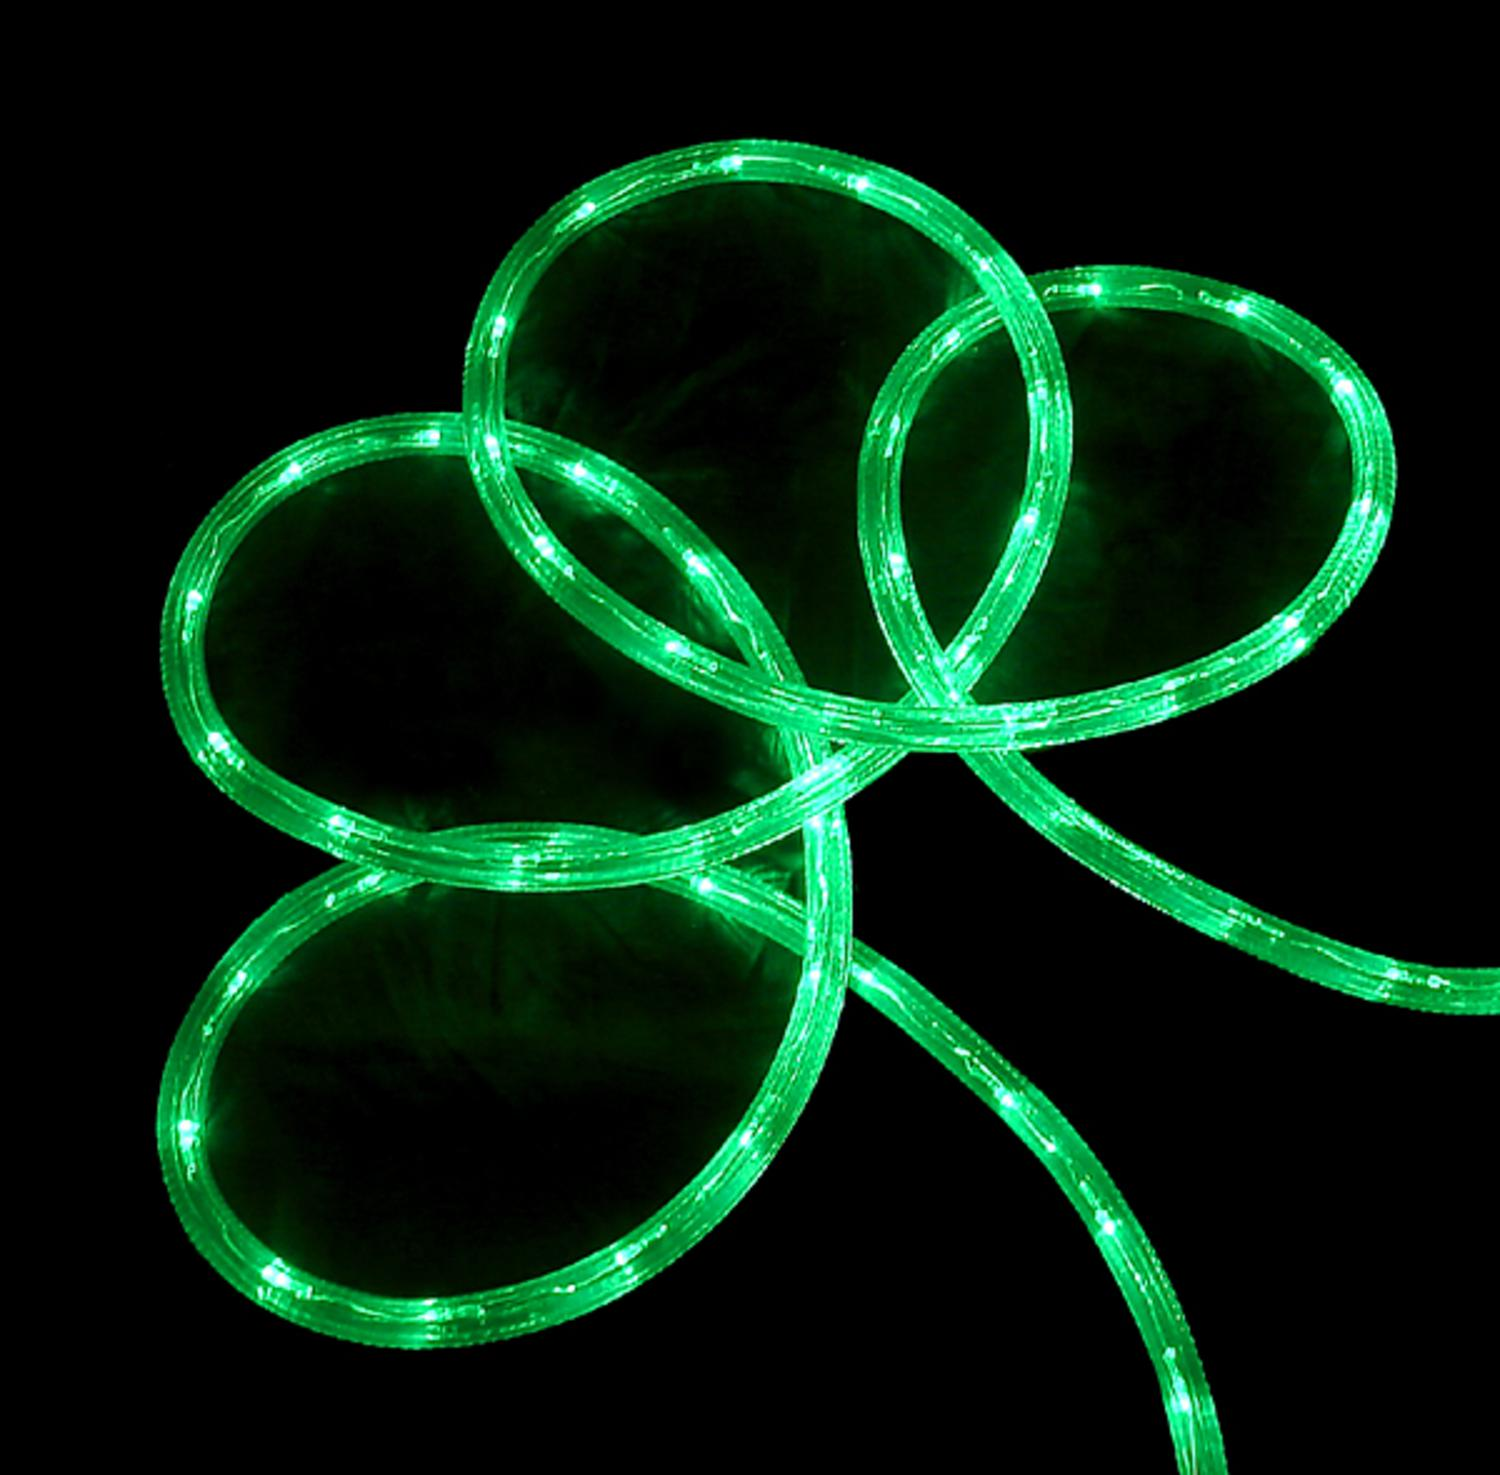 150' Commericial Grade Green LED Indoor/Outdoor Christmas Rope Lights on a Spool